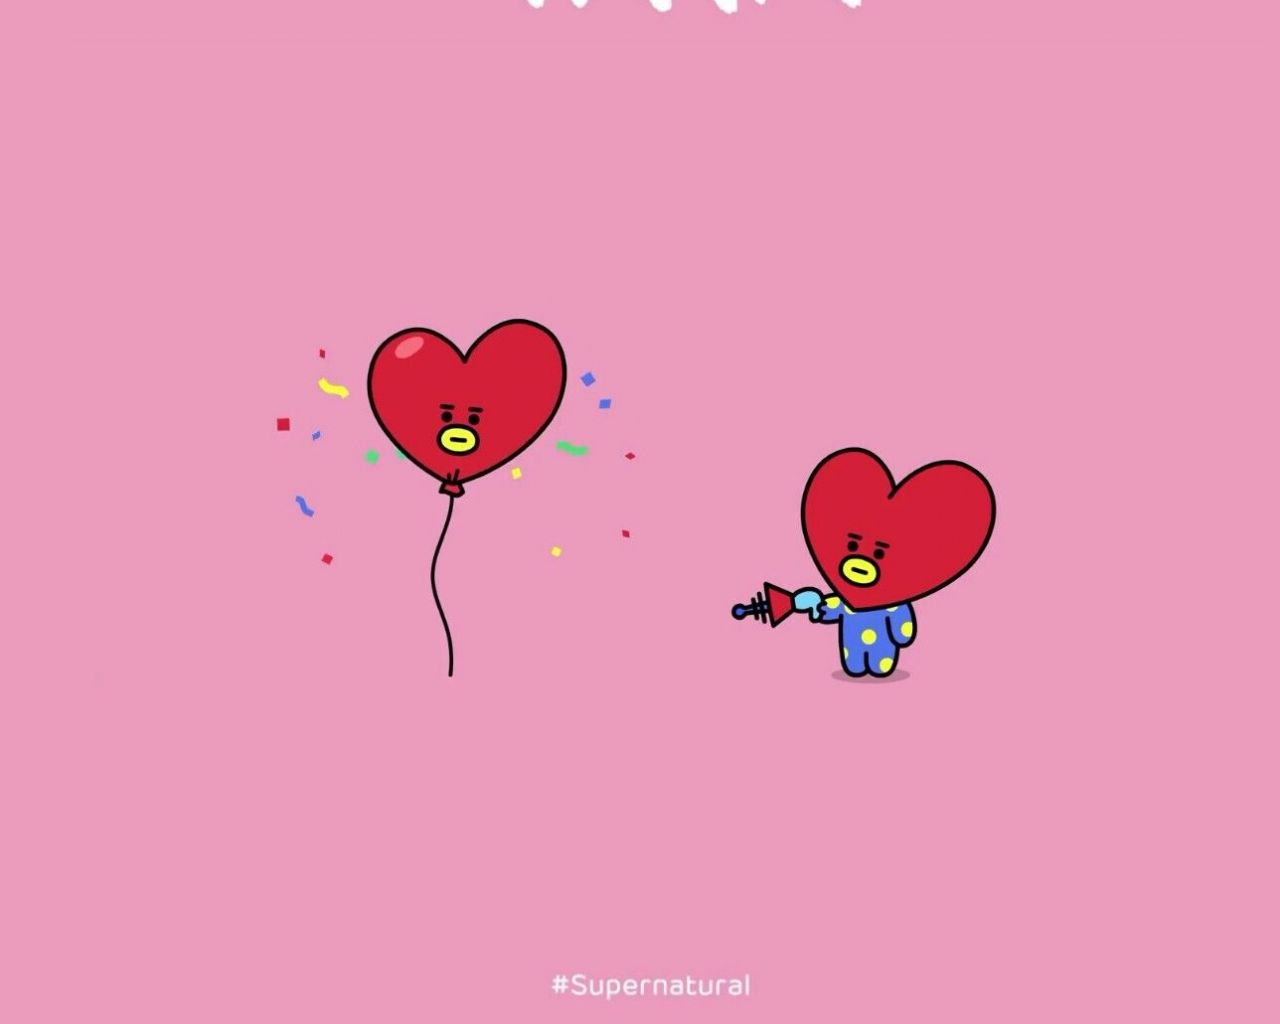 Bts Aesthetic Ipad Wallpapers Bt21 Tata | Quotes and Wallpaper U